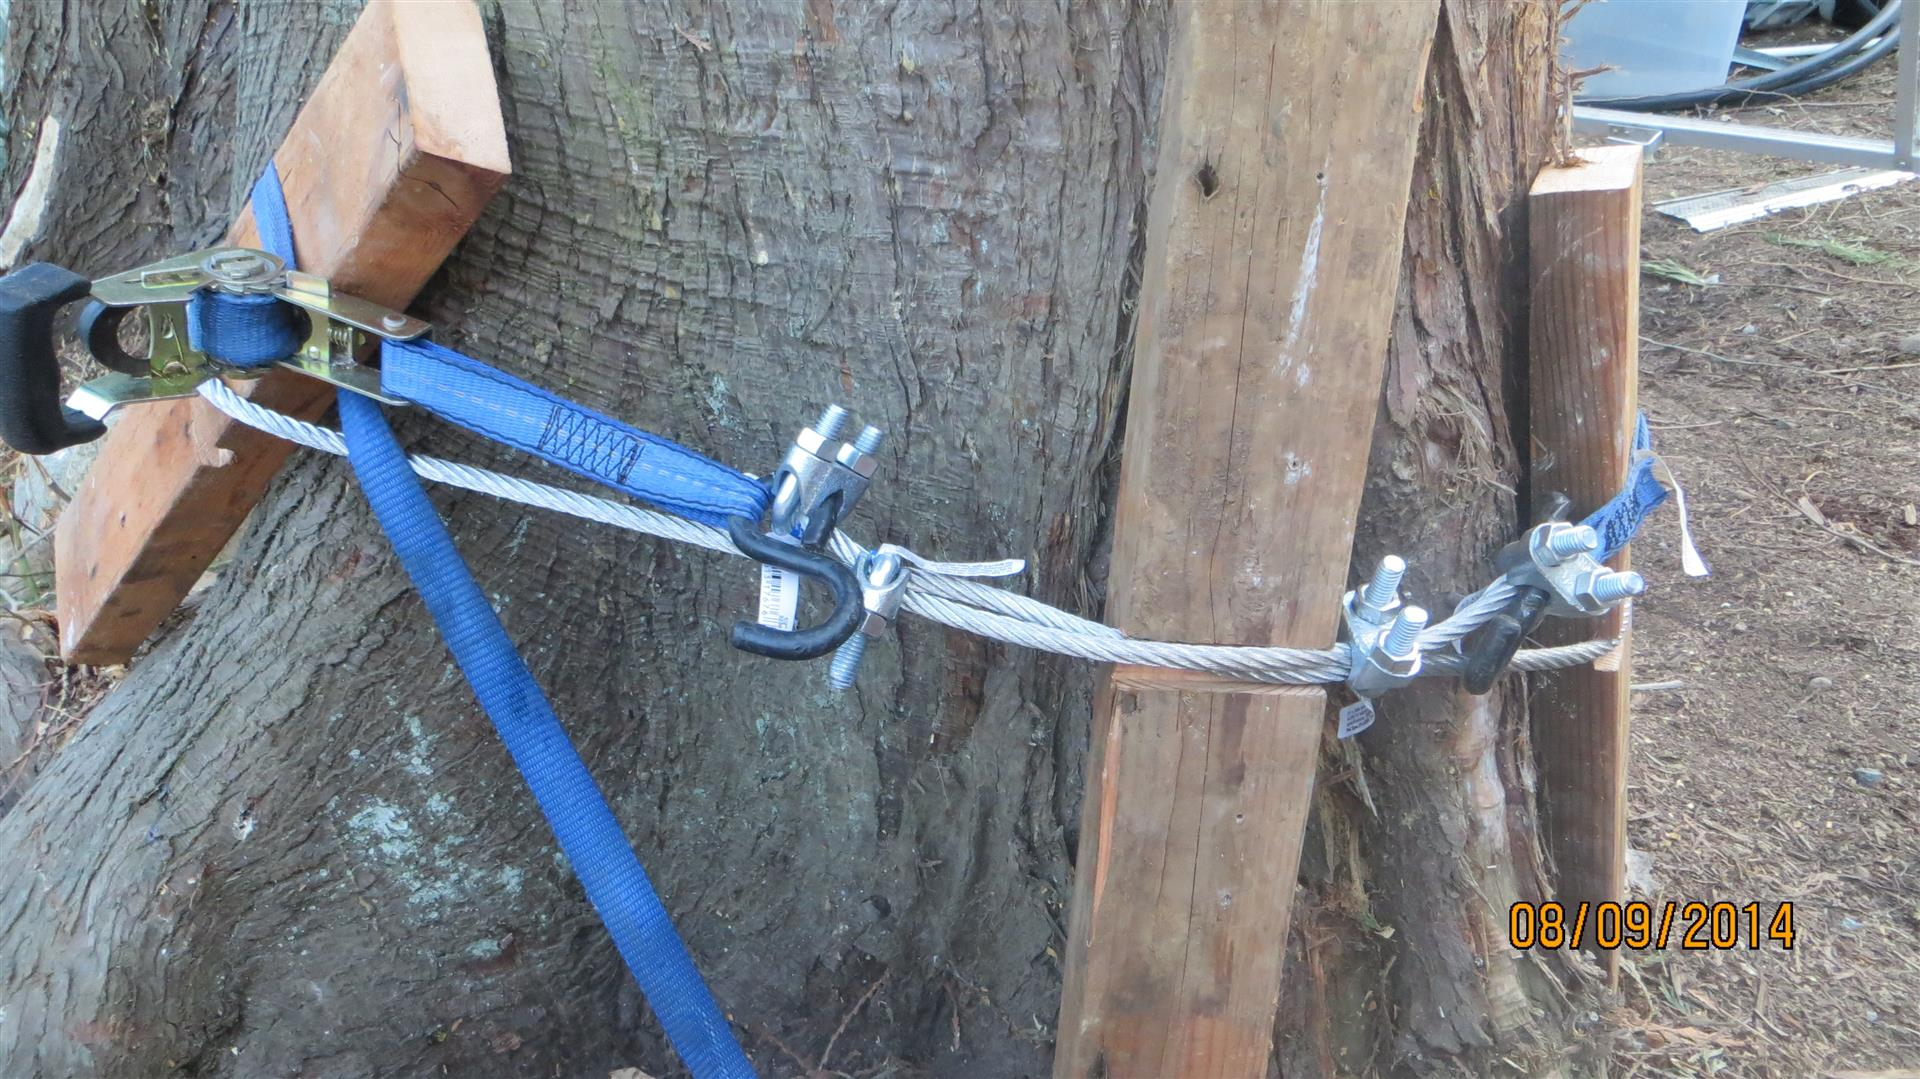 I then used a ratchet strap clamped to each side of the loop to tighten the cable around the tree before installing the double cable clamps